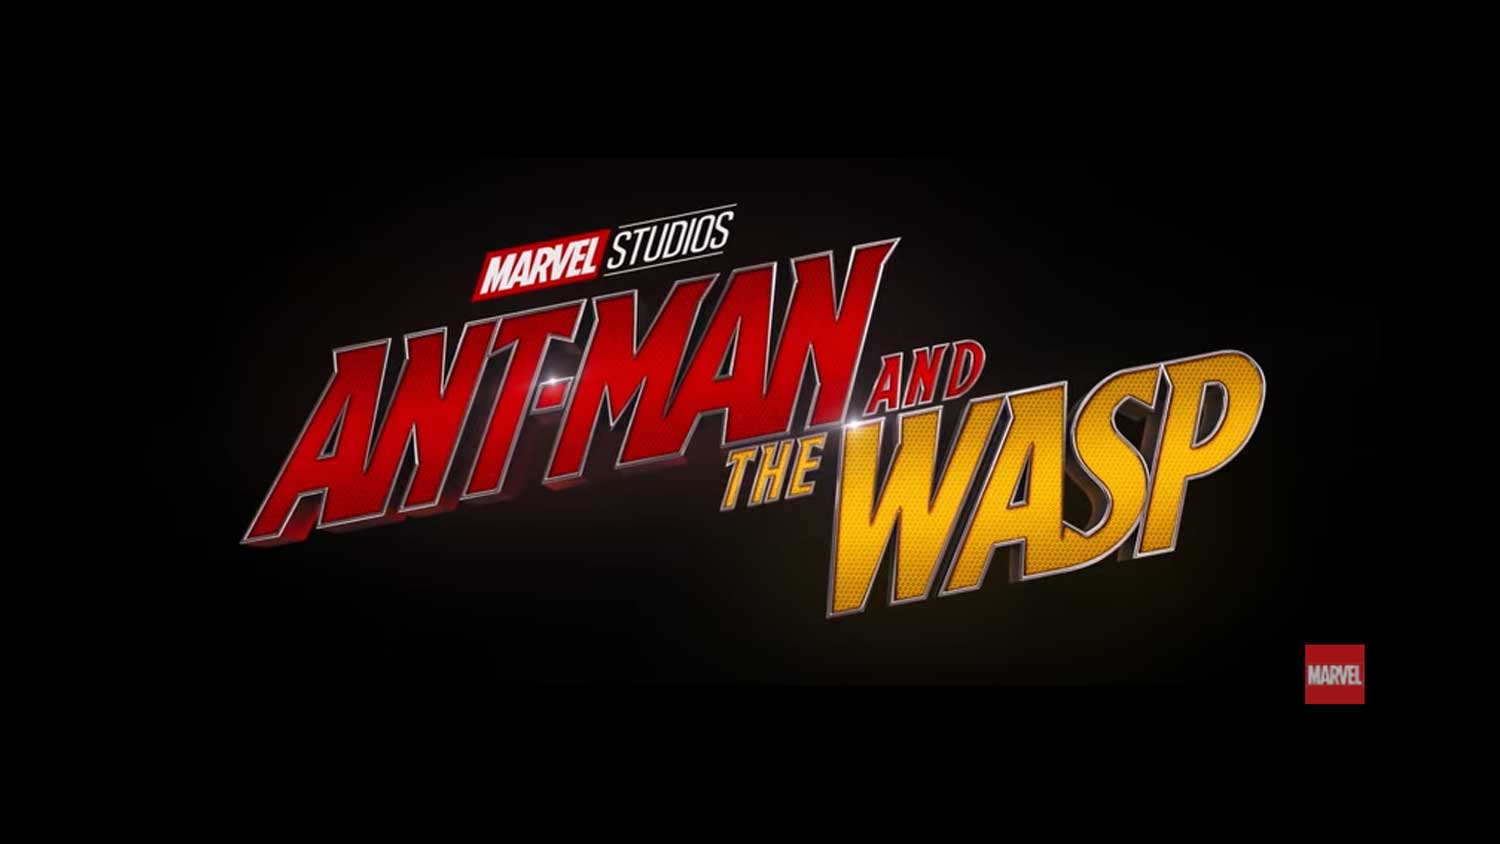 Ant-Man And The Wasp Trailer – Bigger, Better, Bolder - OC Movie Reviews - Movie Reviews, Movie News, Documentary Reviews, Short Films, Short Film Reviews, Trailers, Movie Trailers, Interviews, film reviews, film news, hollywood, indie films, documentaries